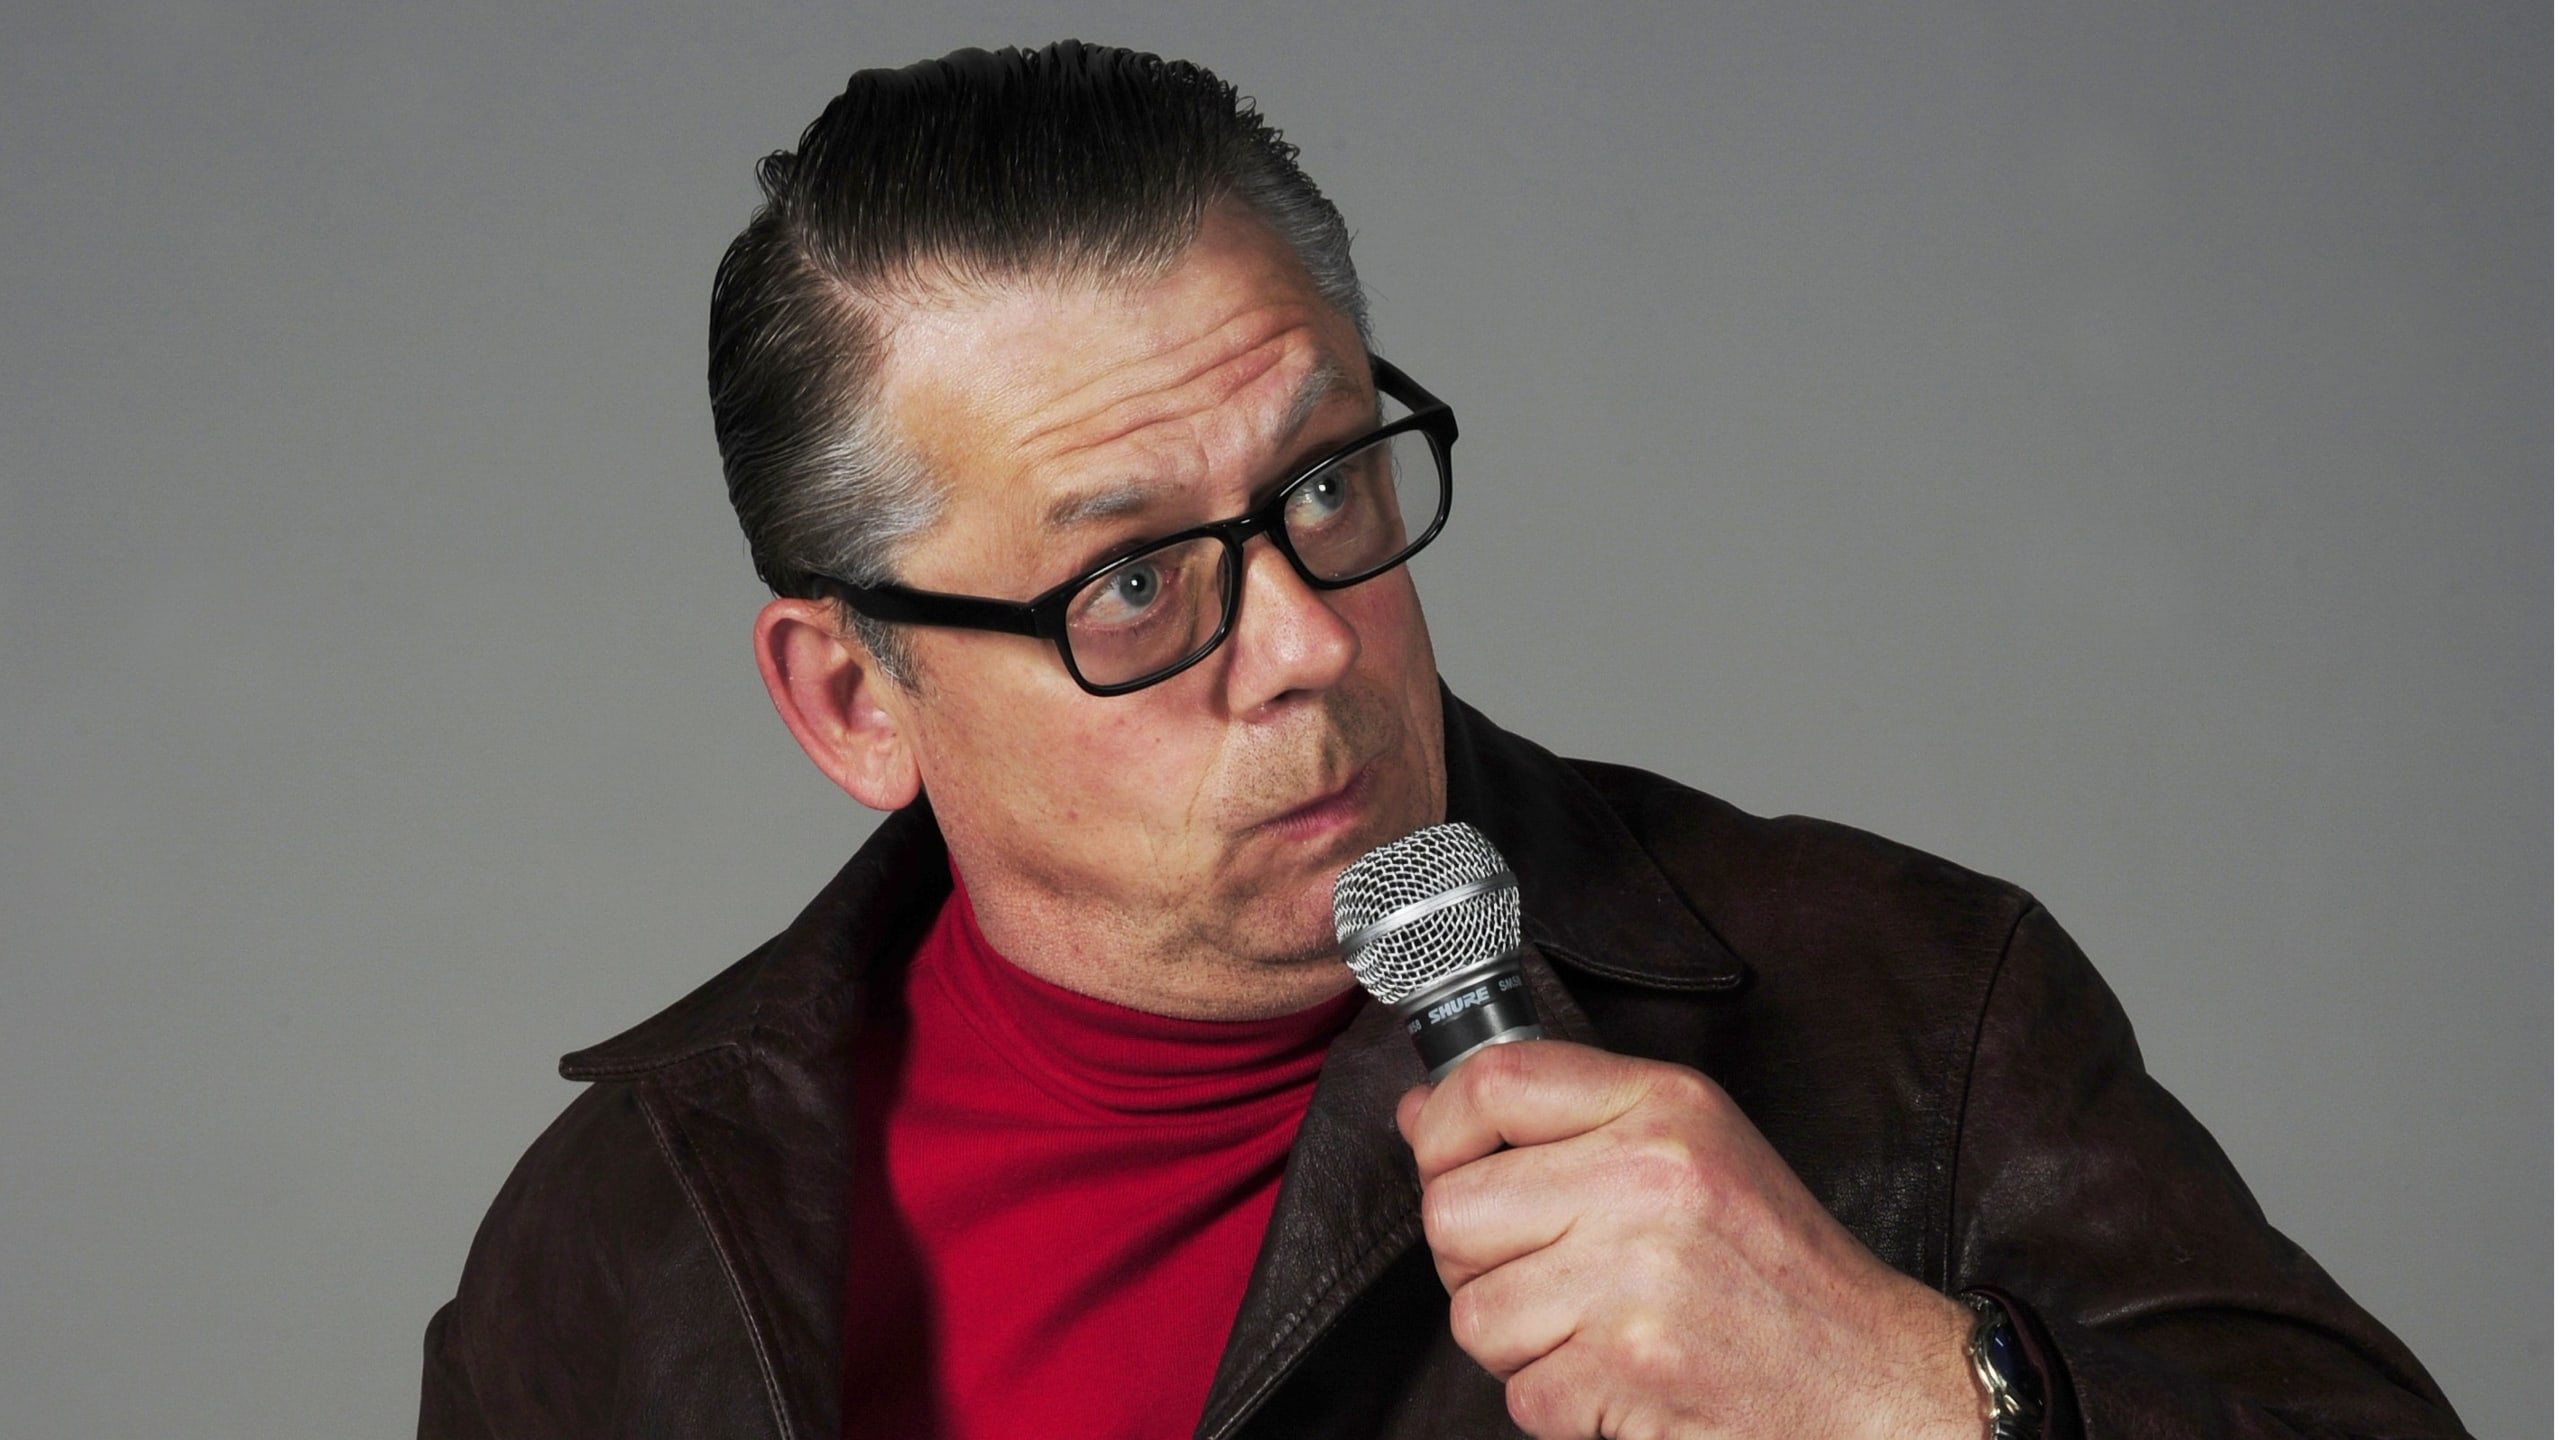 John Shuttleworth's Back Prod Shot